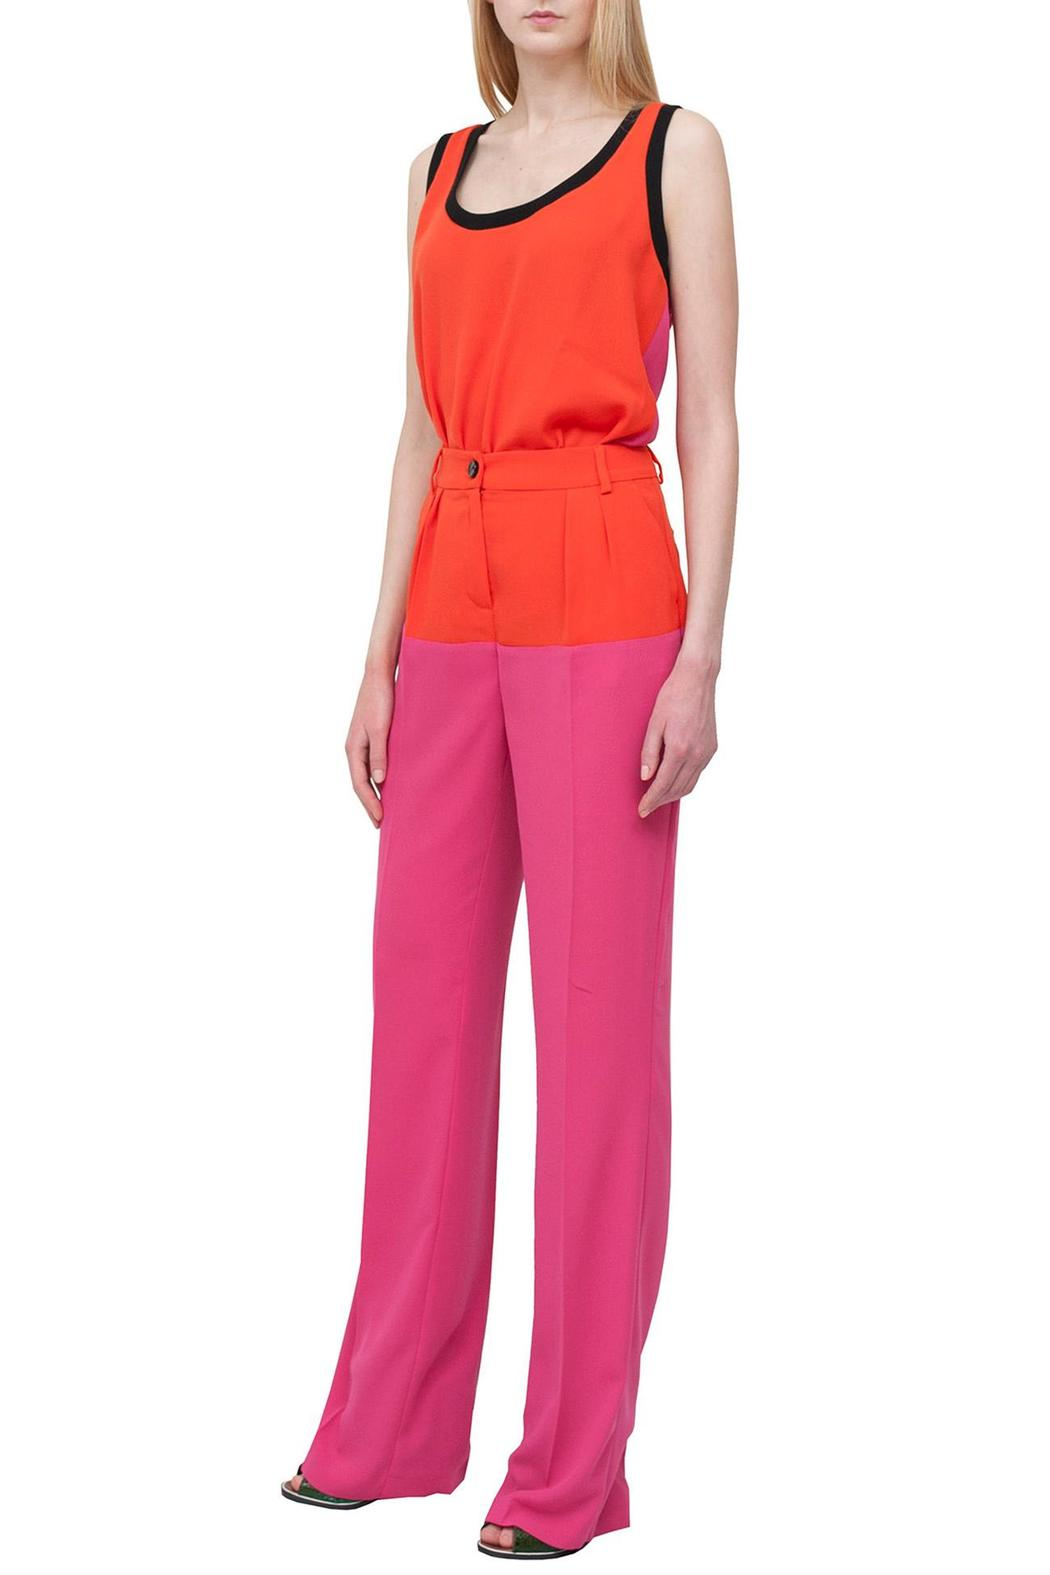 Cavalli Class Pink Stylish Trousers - Front Full Image